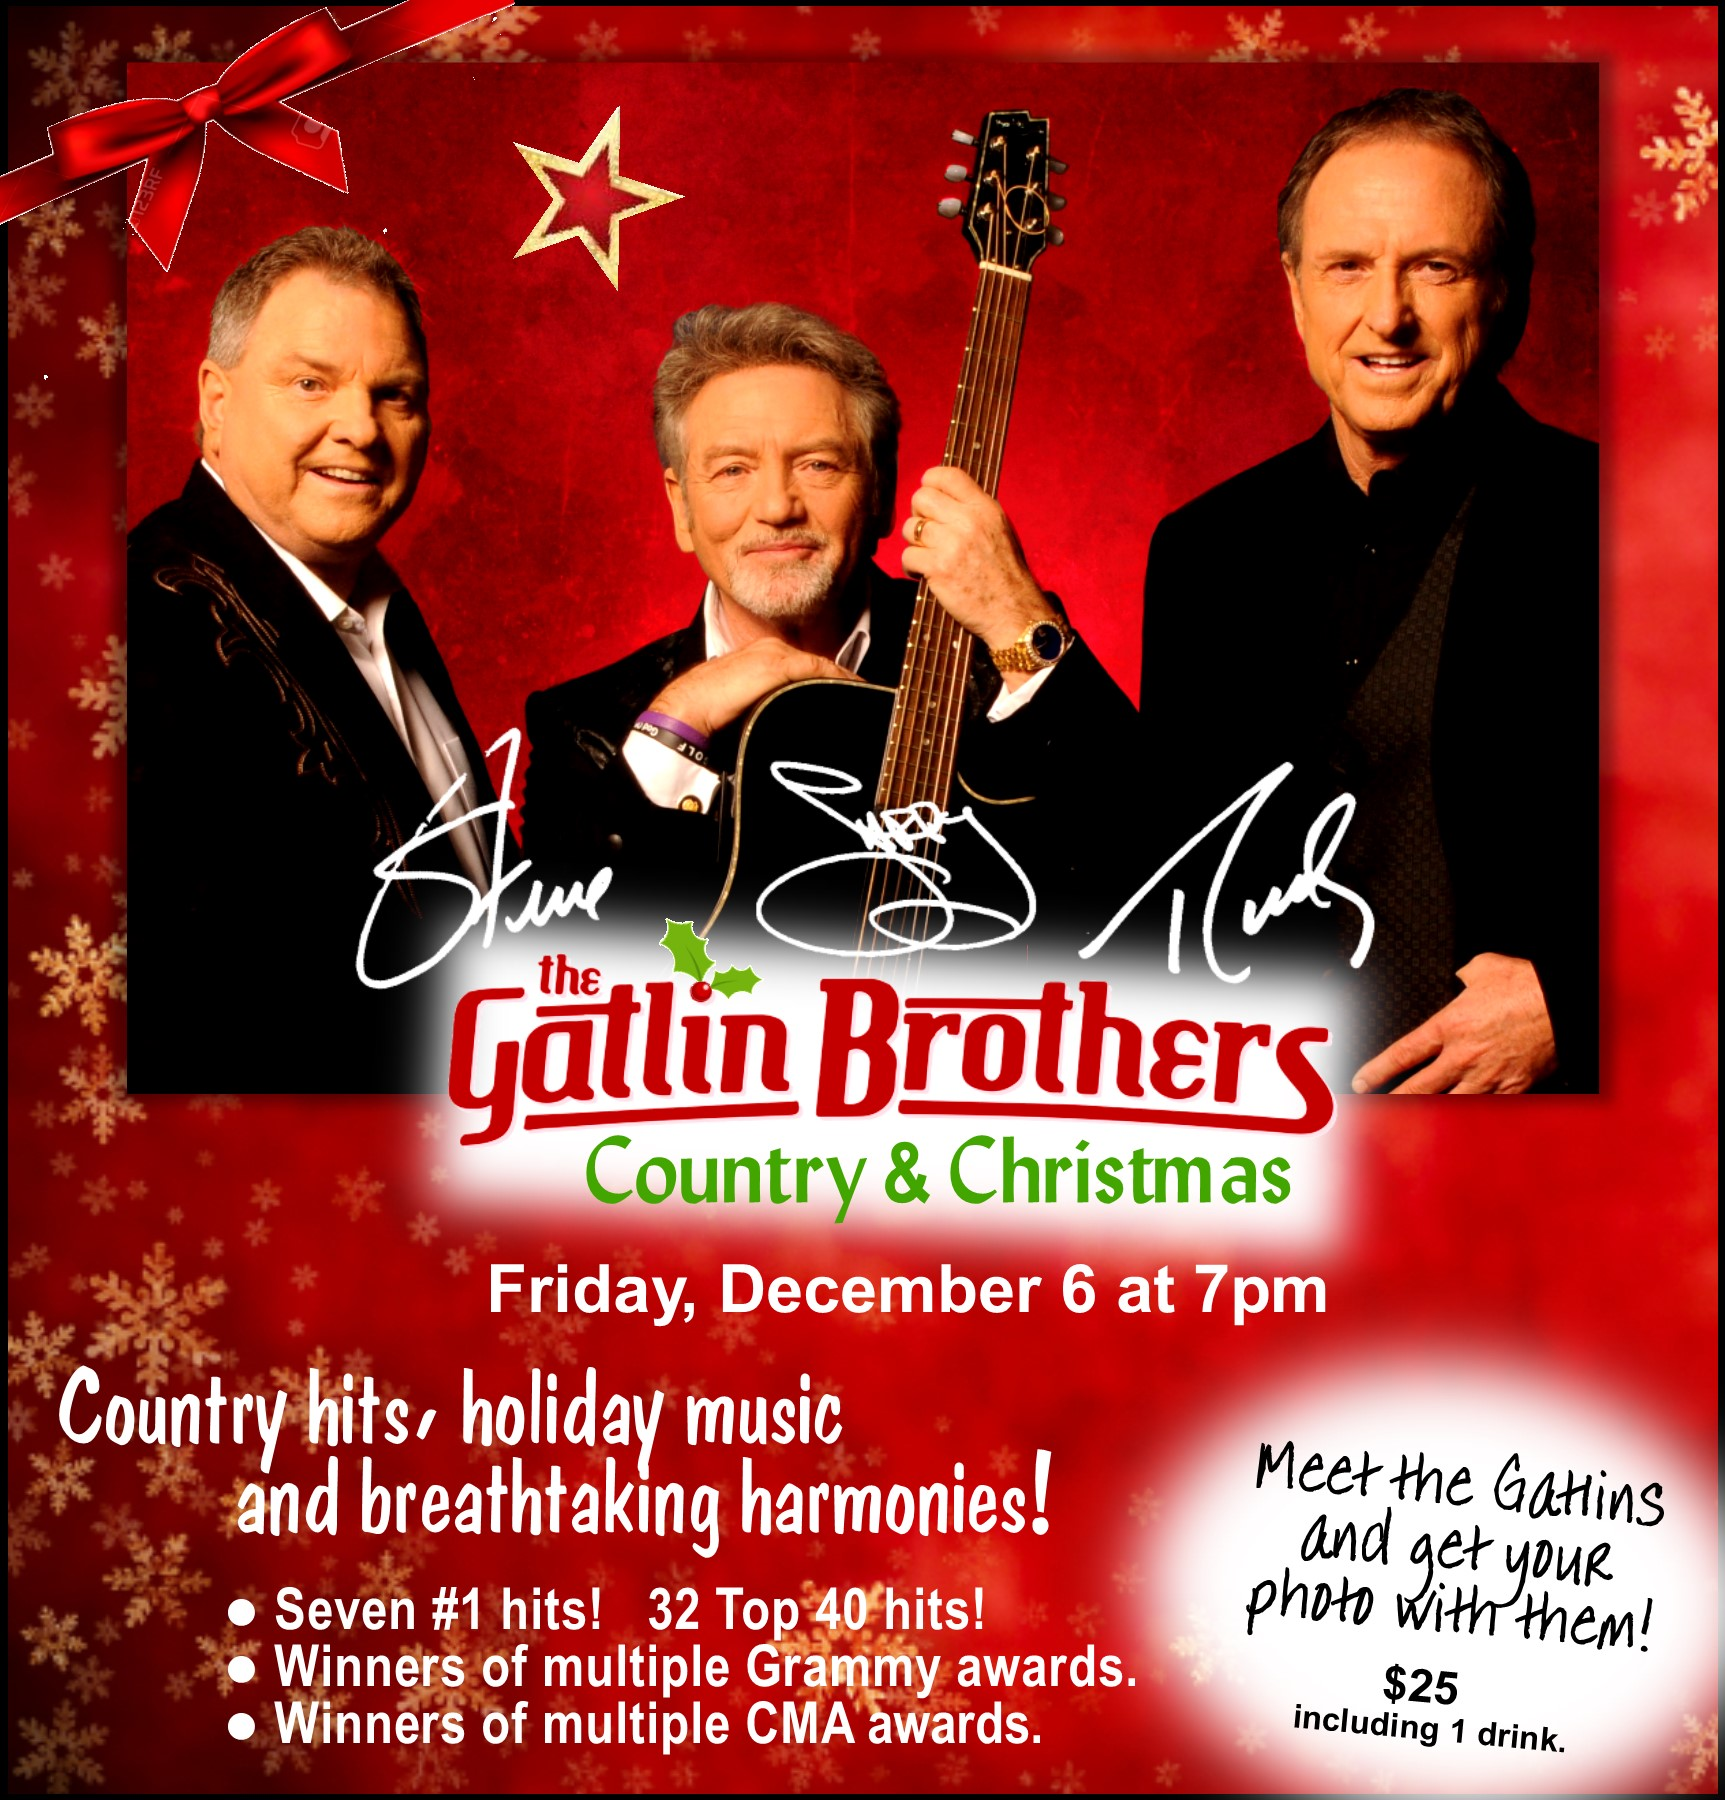 The celebrated Gatlin Brothers will delight you with some of their hits, glorious holiday music, breathtaking harmonies, and inspirational stories. Winners of the multiple Grammy and CMA awards, with seven number-one hits and 32 Top 40 hits.